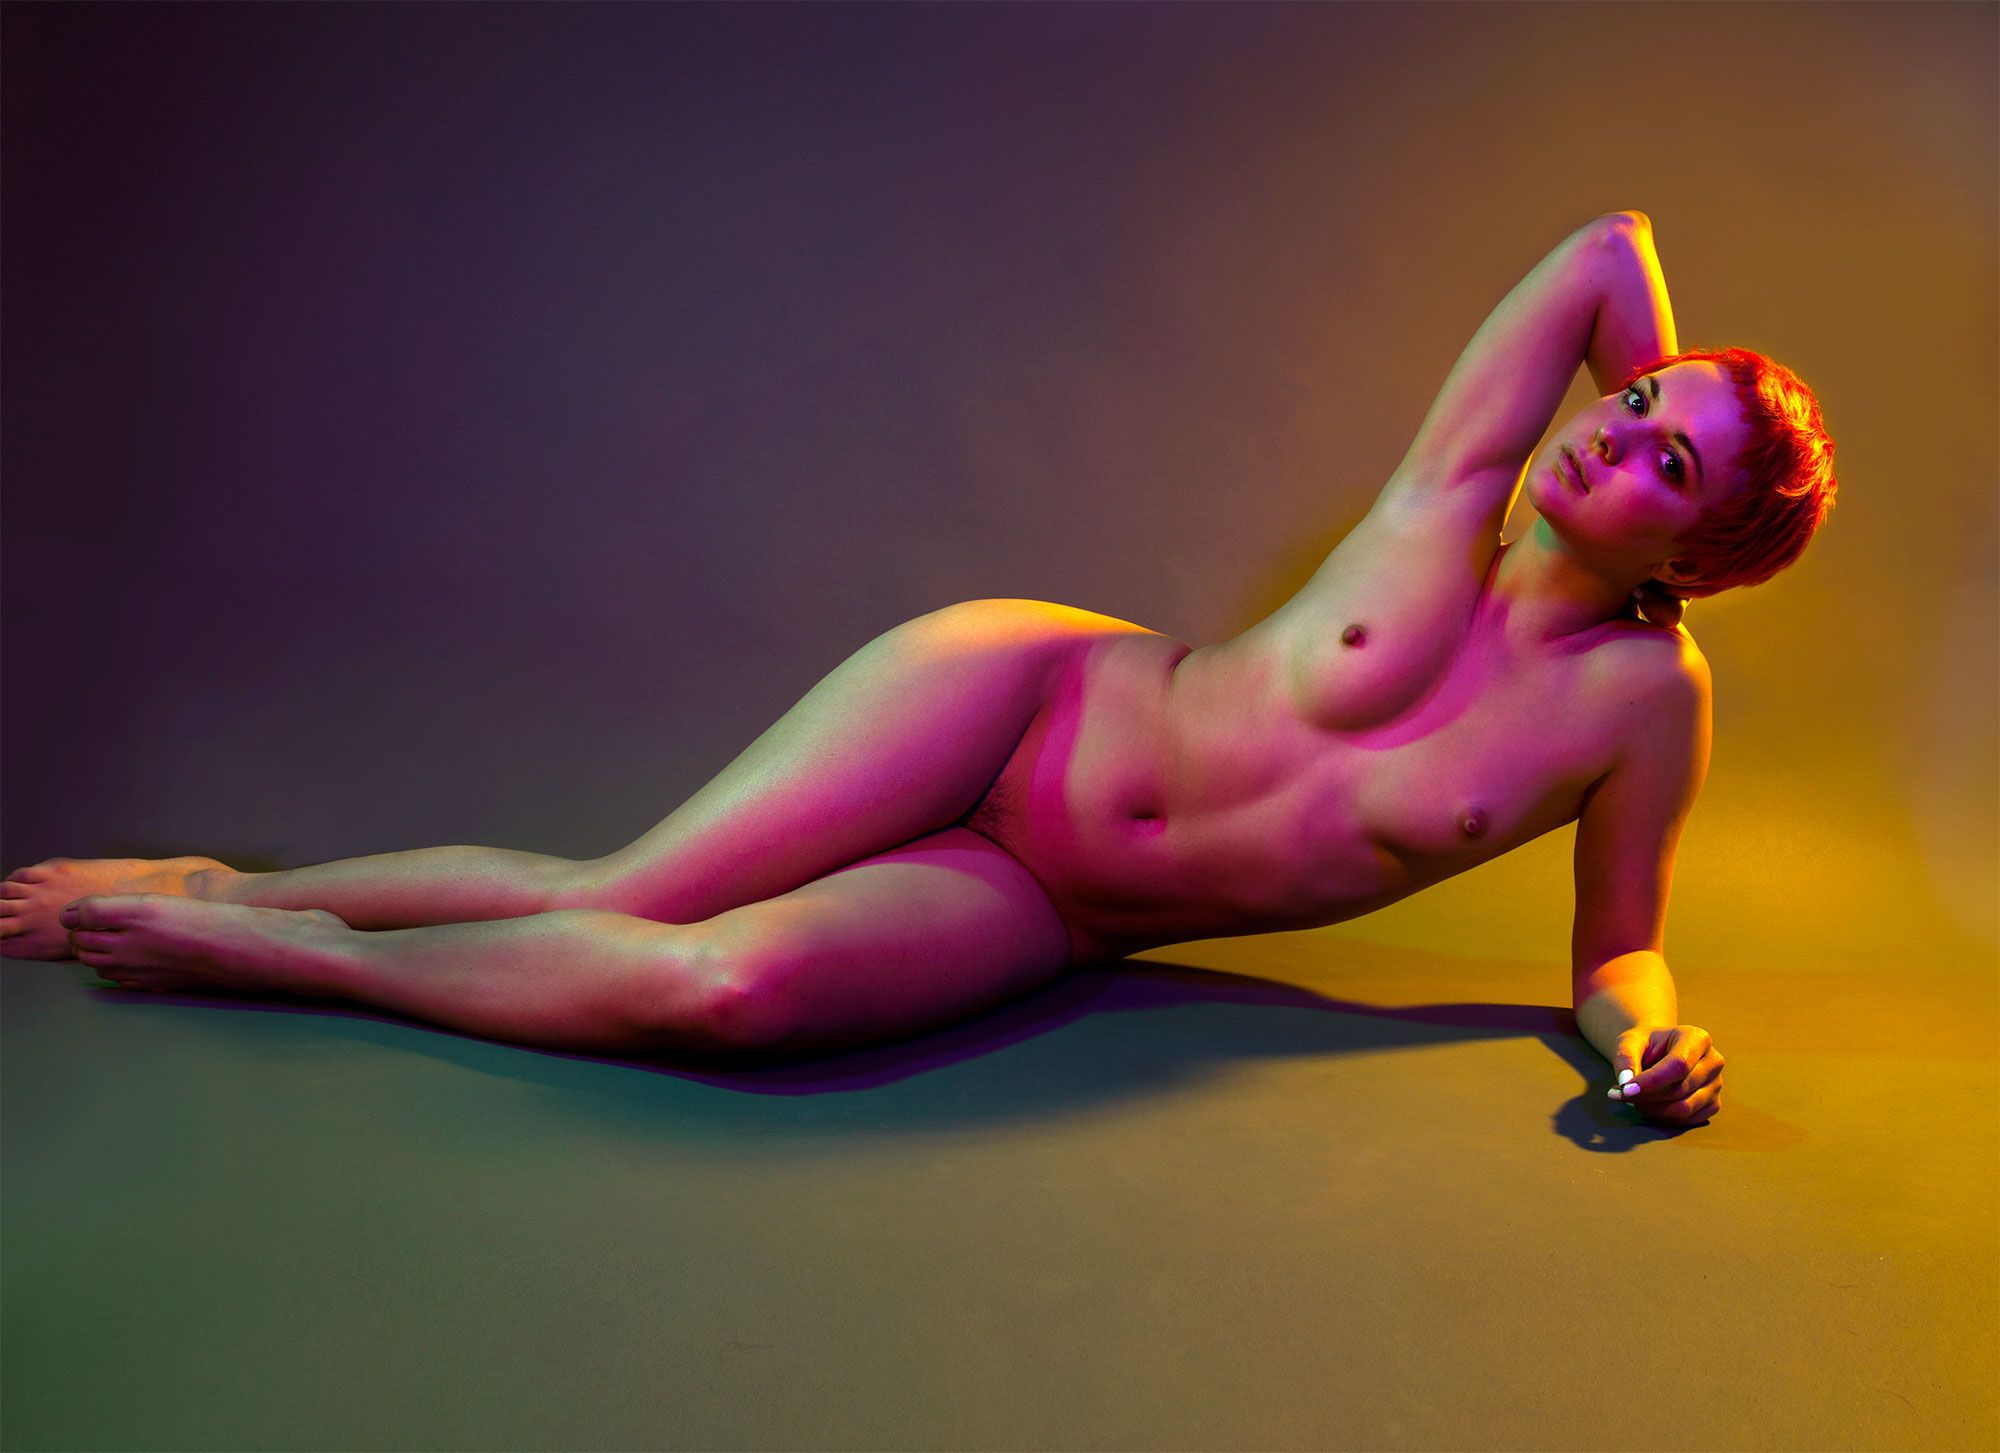 These Breathtaking Nude Photos Are Shattering Gender Norms [NSFW]